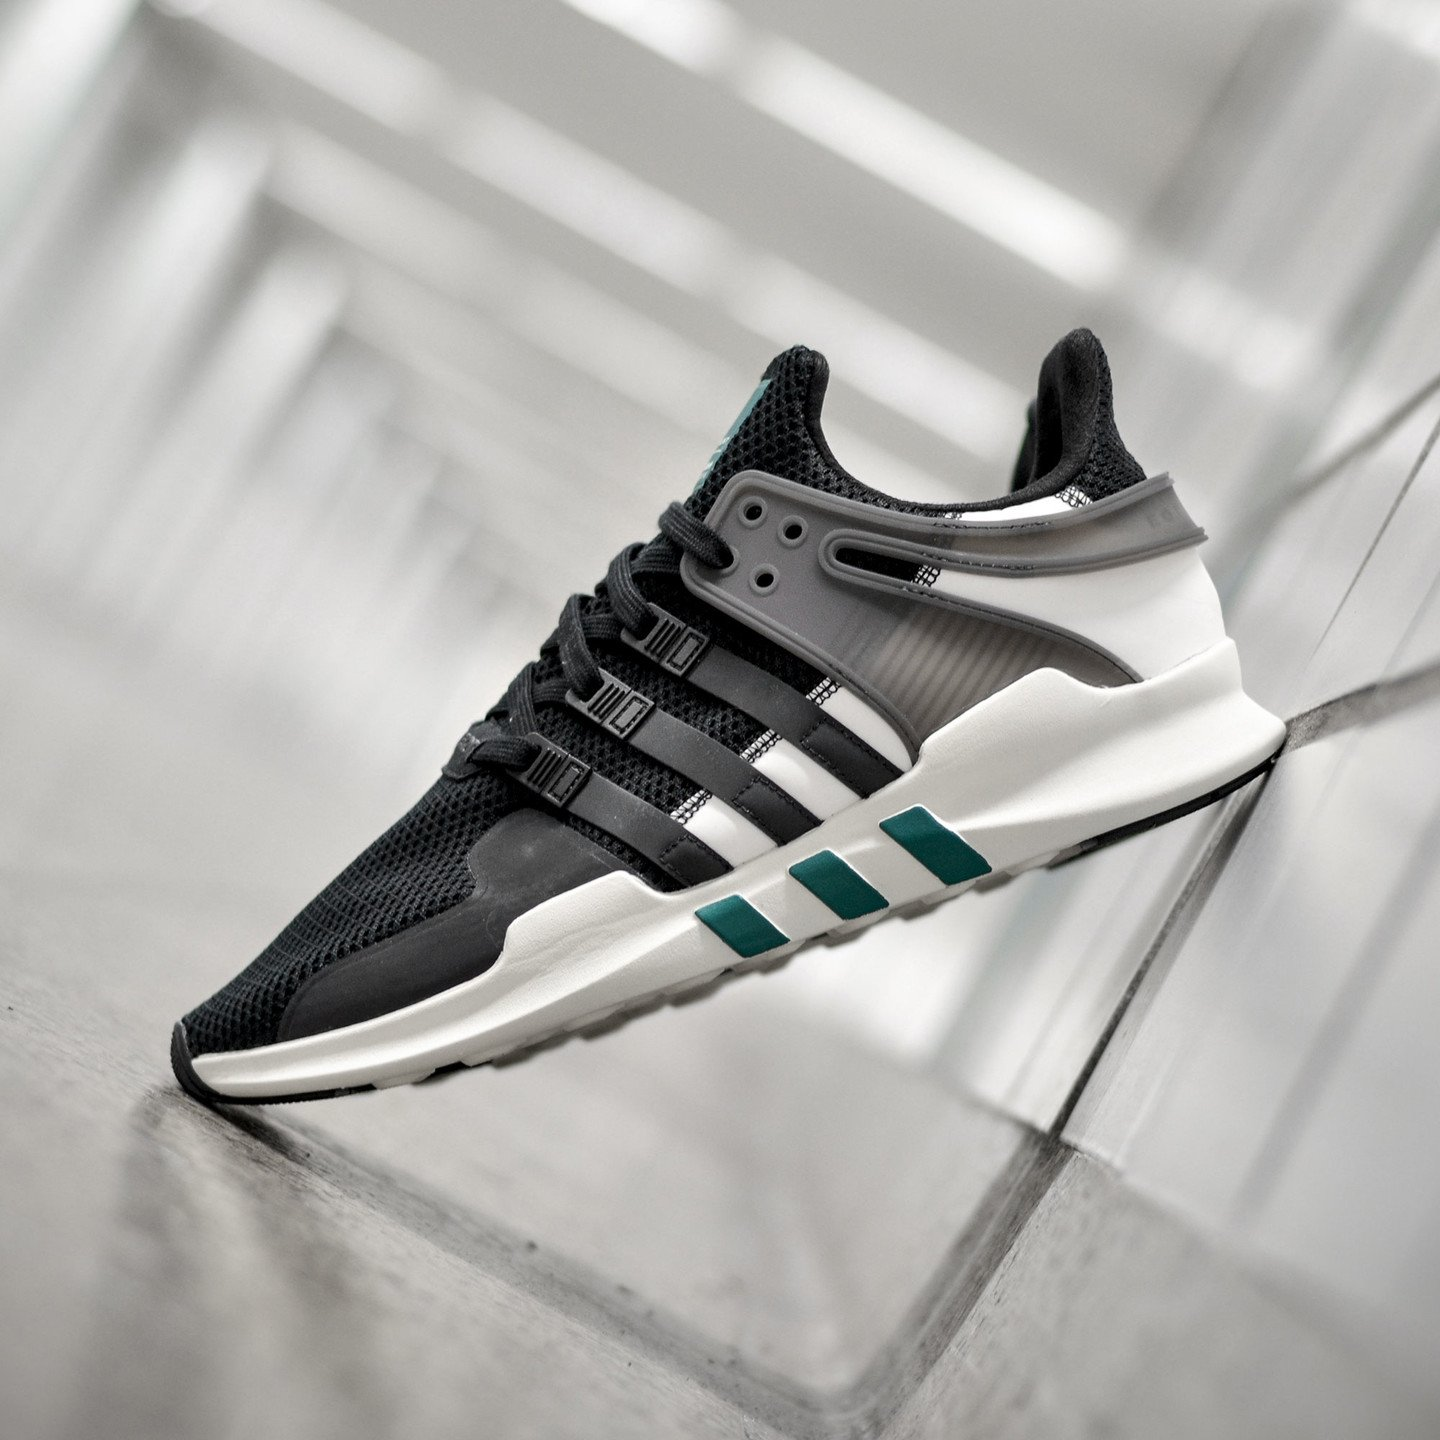 Adidas EQT Support ADV 'Reflective Pack' Core Black / Sub Green BA8321-43.33